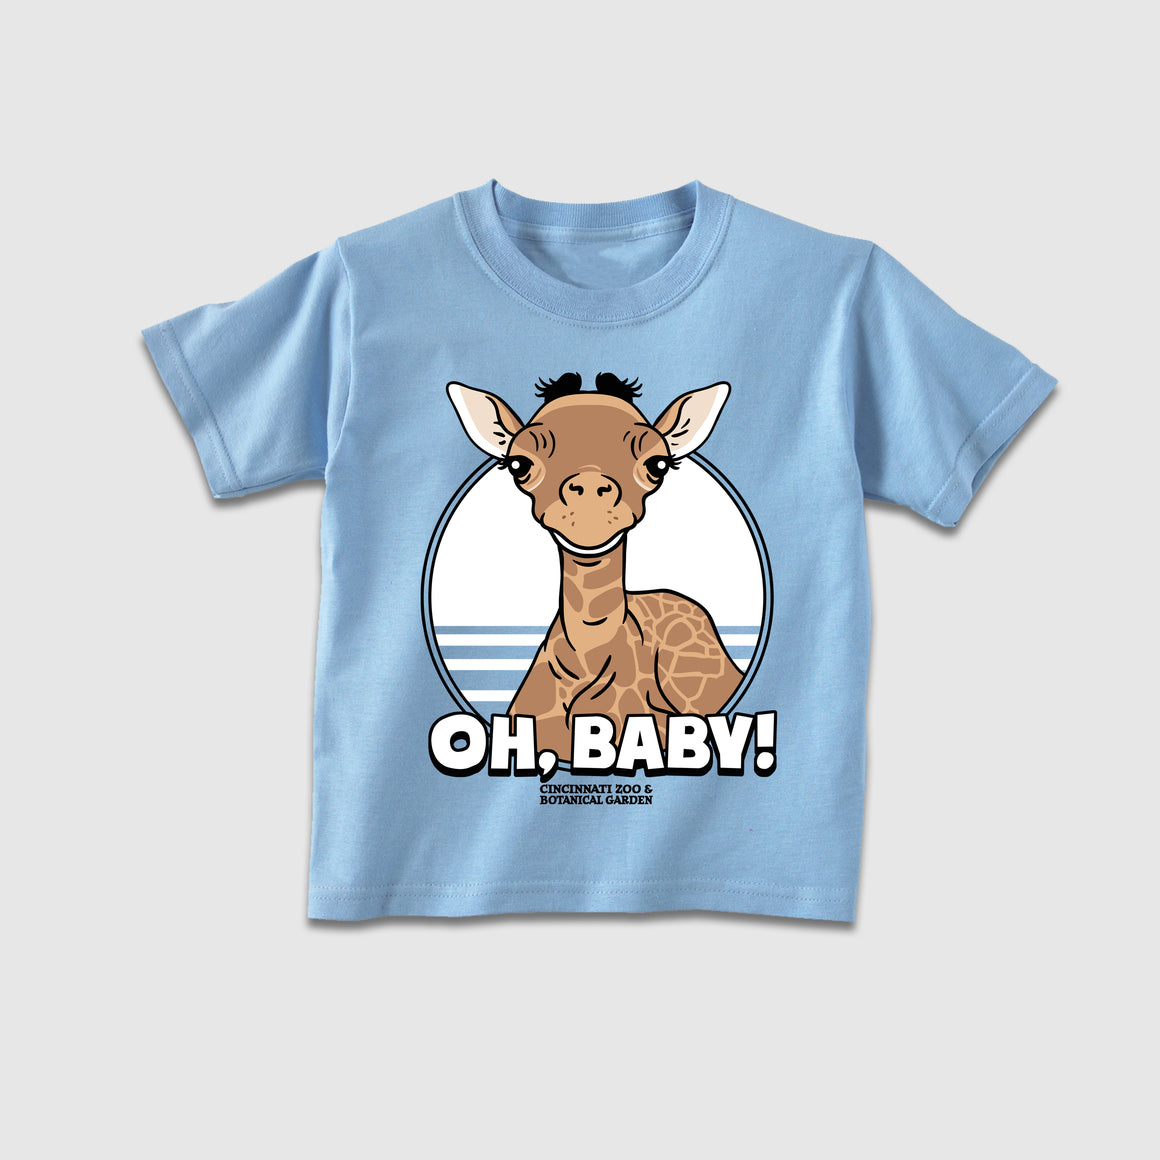 Oh, Baby! - Cincinnati Zoo Babies - Youth Garments